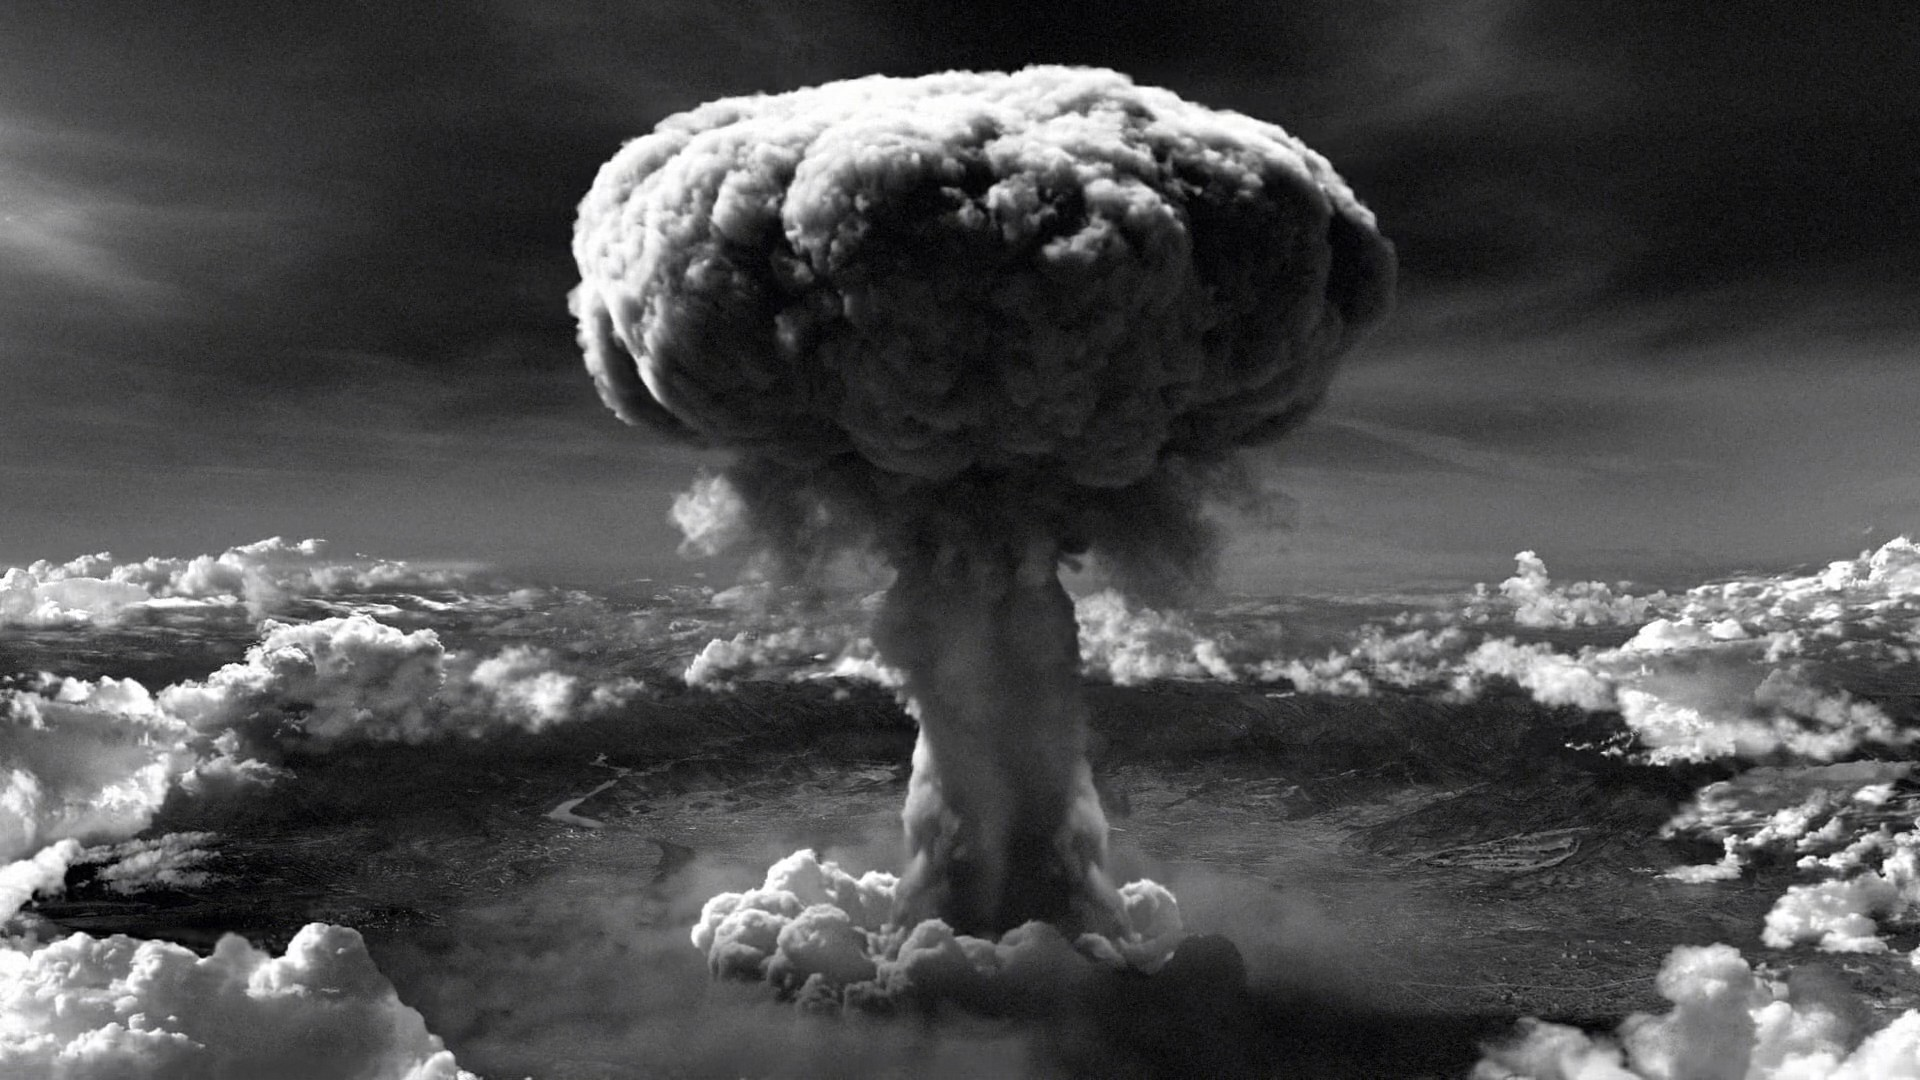 an analysis of the effects of the atomic bomb dropped in japan This review contains the effects of atomic bombing on decision to drop atomic bomb in japan is still alive analysis of classmate - subject- atomic bomb.